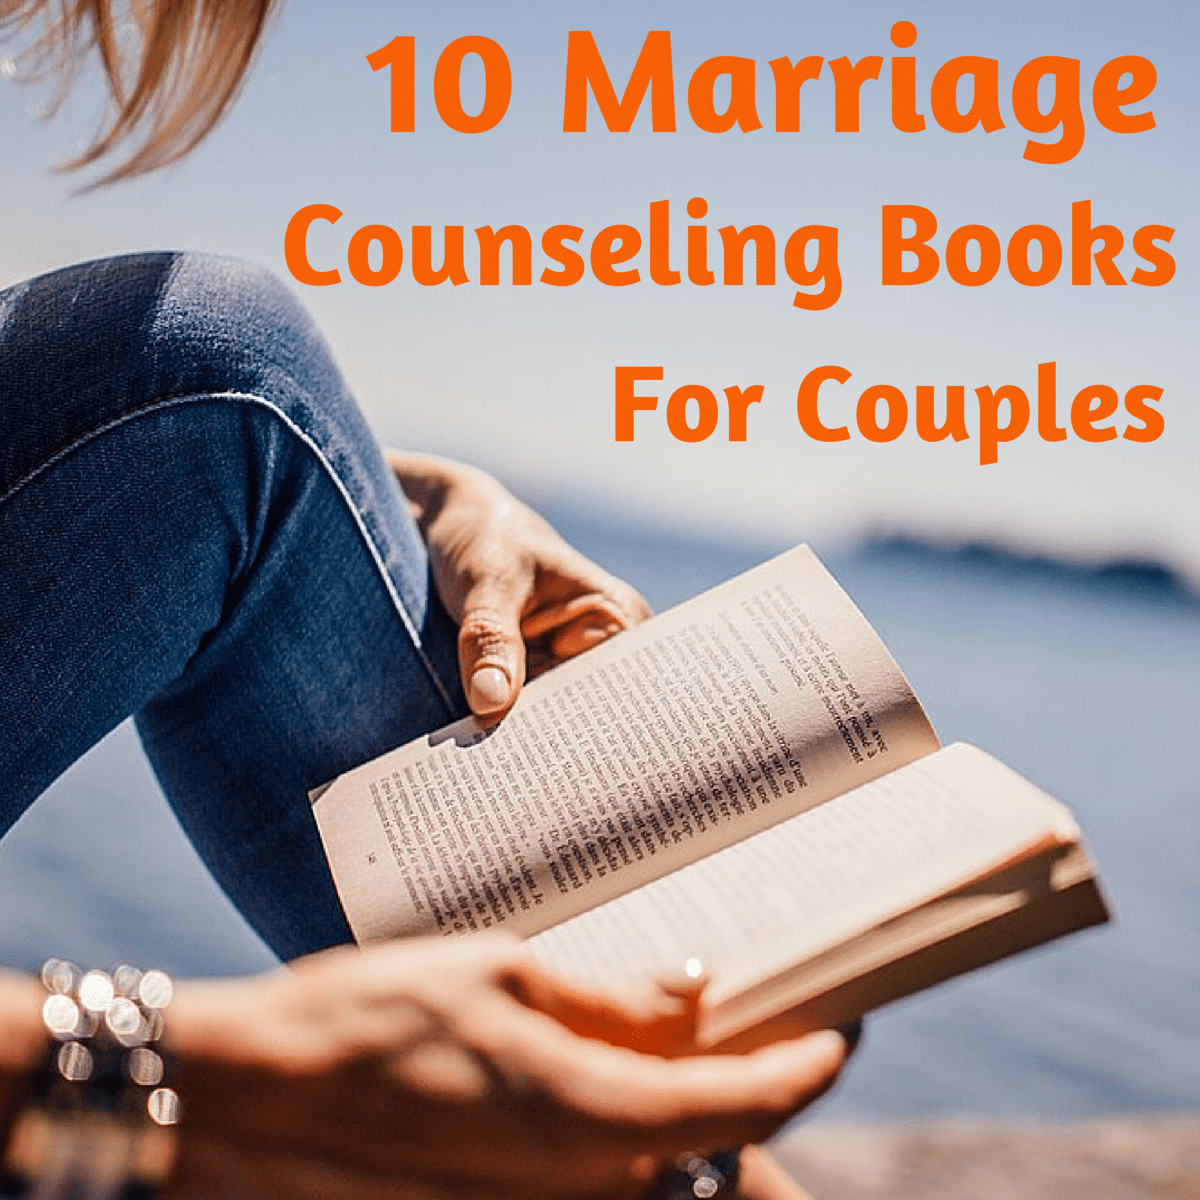 Best marriage counselling books